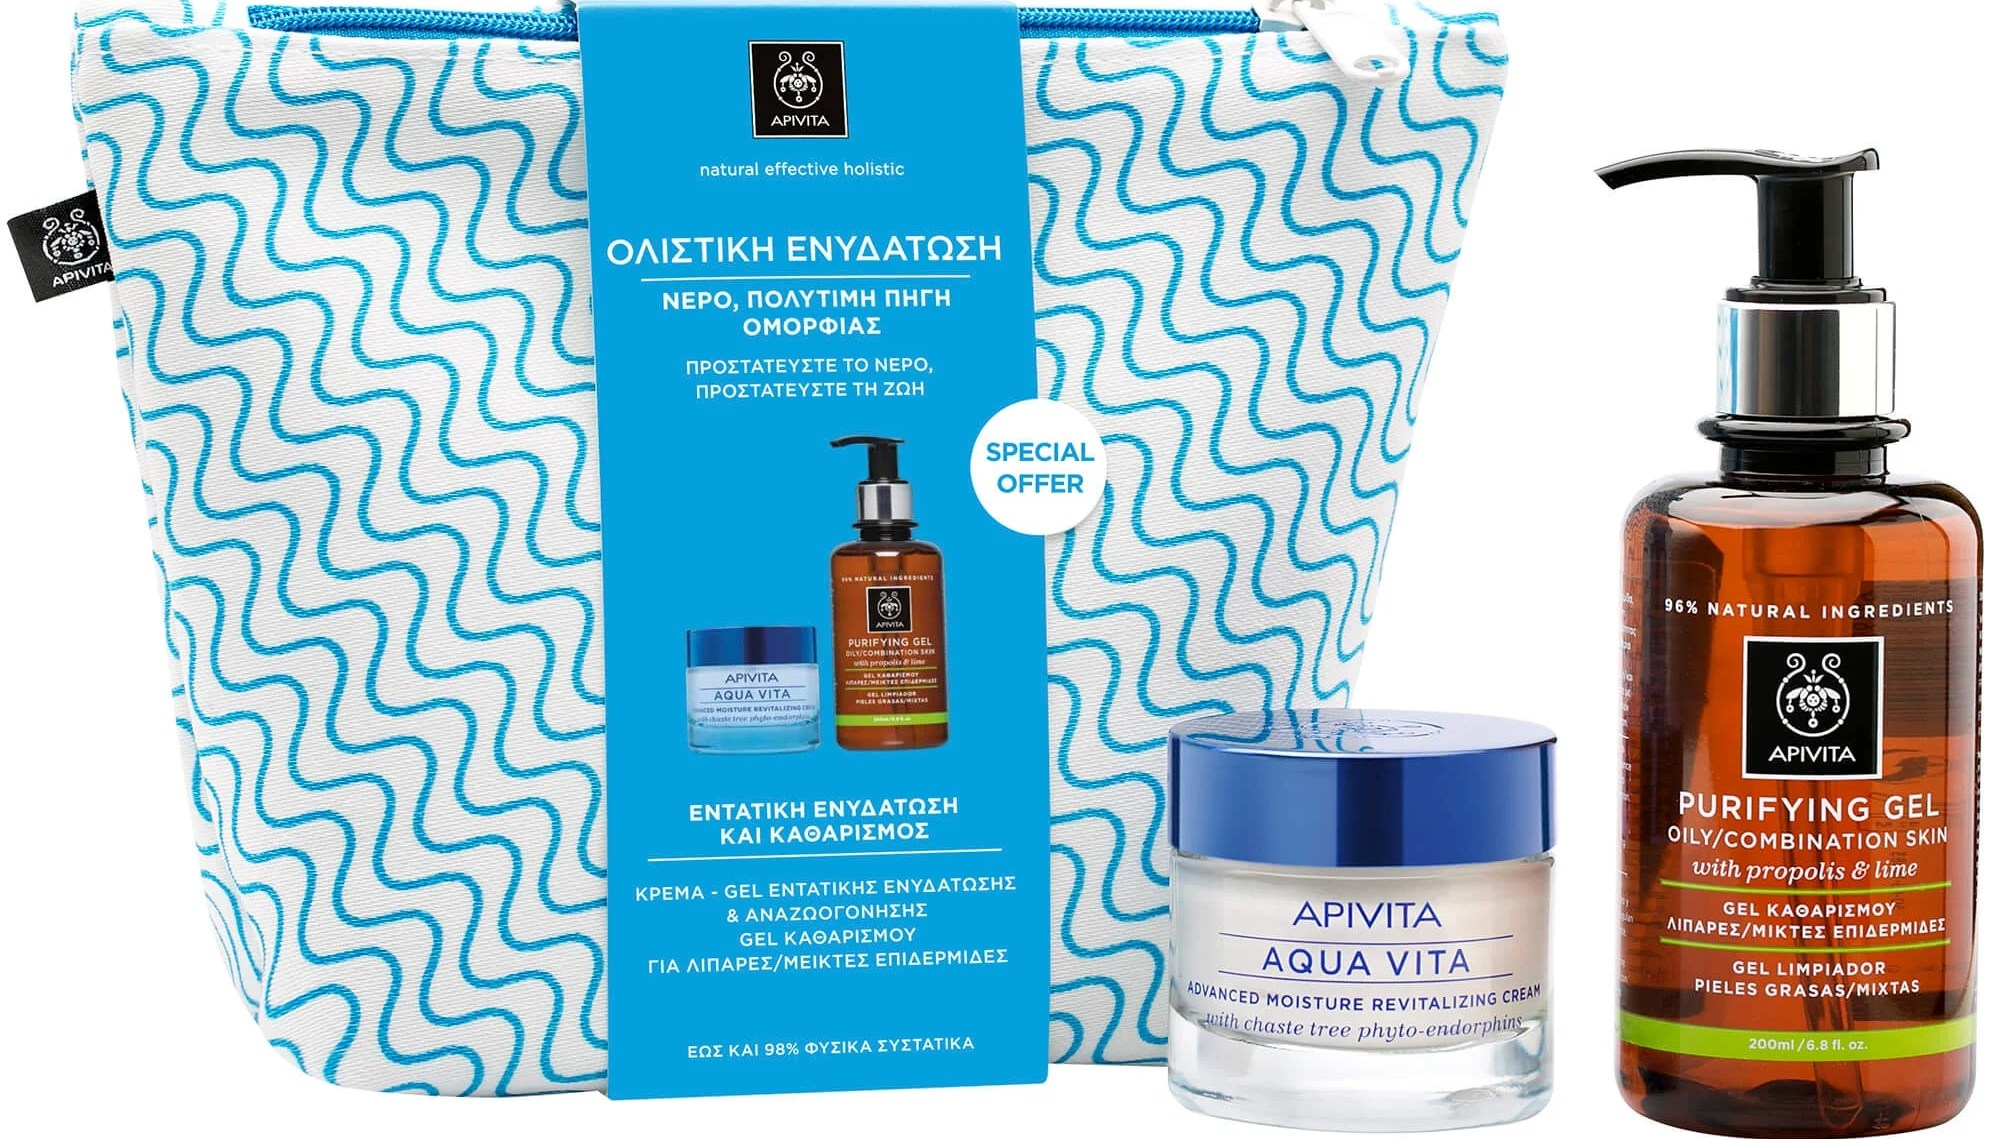 Apivita Promo Aqua Vita Moisturizing Cream Oily-Combination 50ml & Δώρο Purifying Gel With Propolis & Lime 200ml & Νεσεσέρ